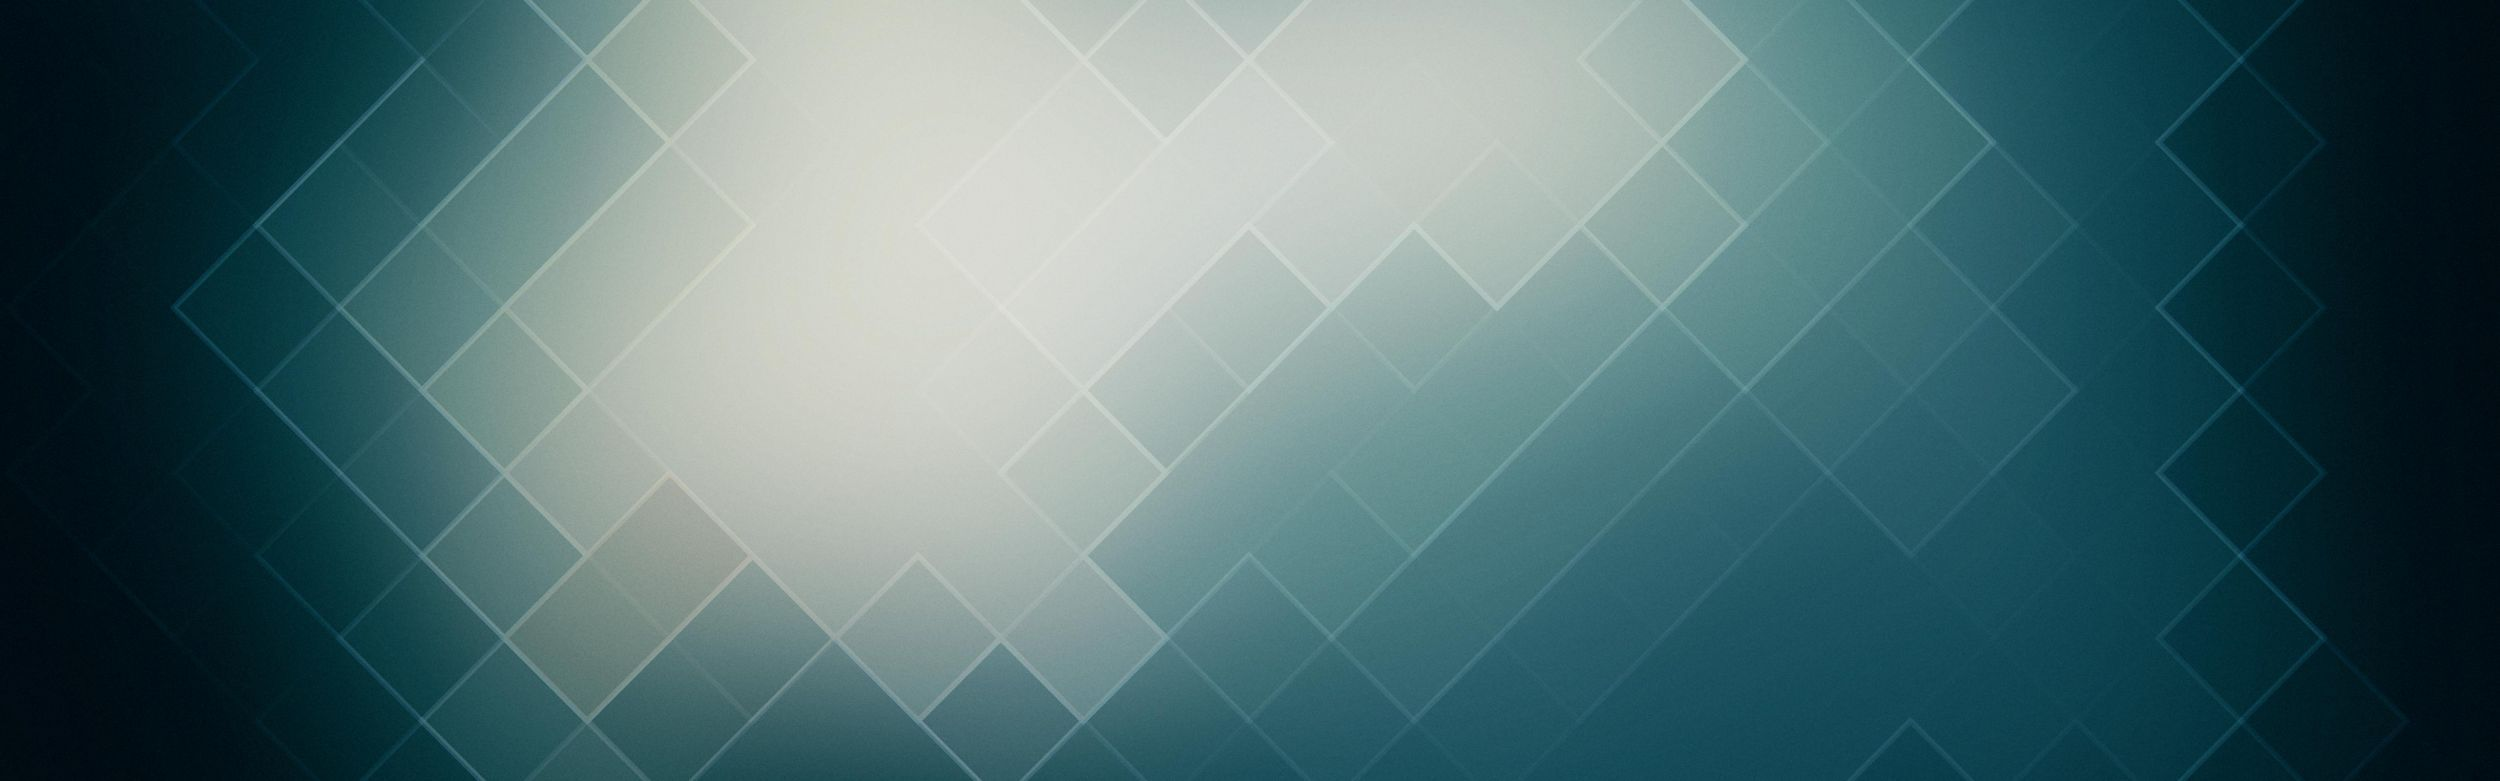 QBD36 Abstract Wallpaper 5120x1600 Download download at 2500x781